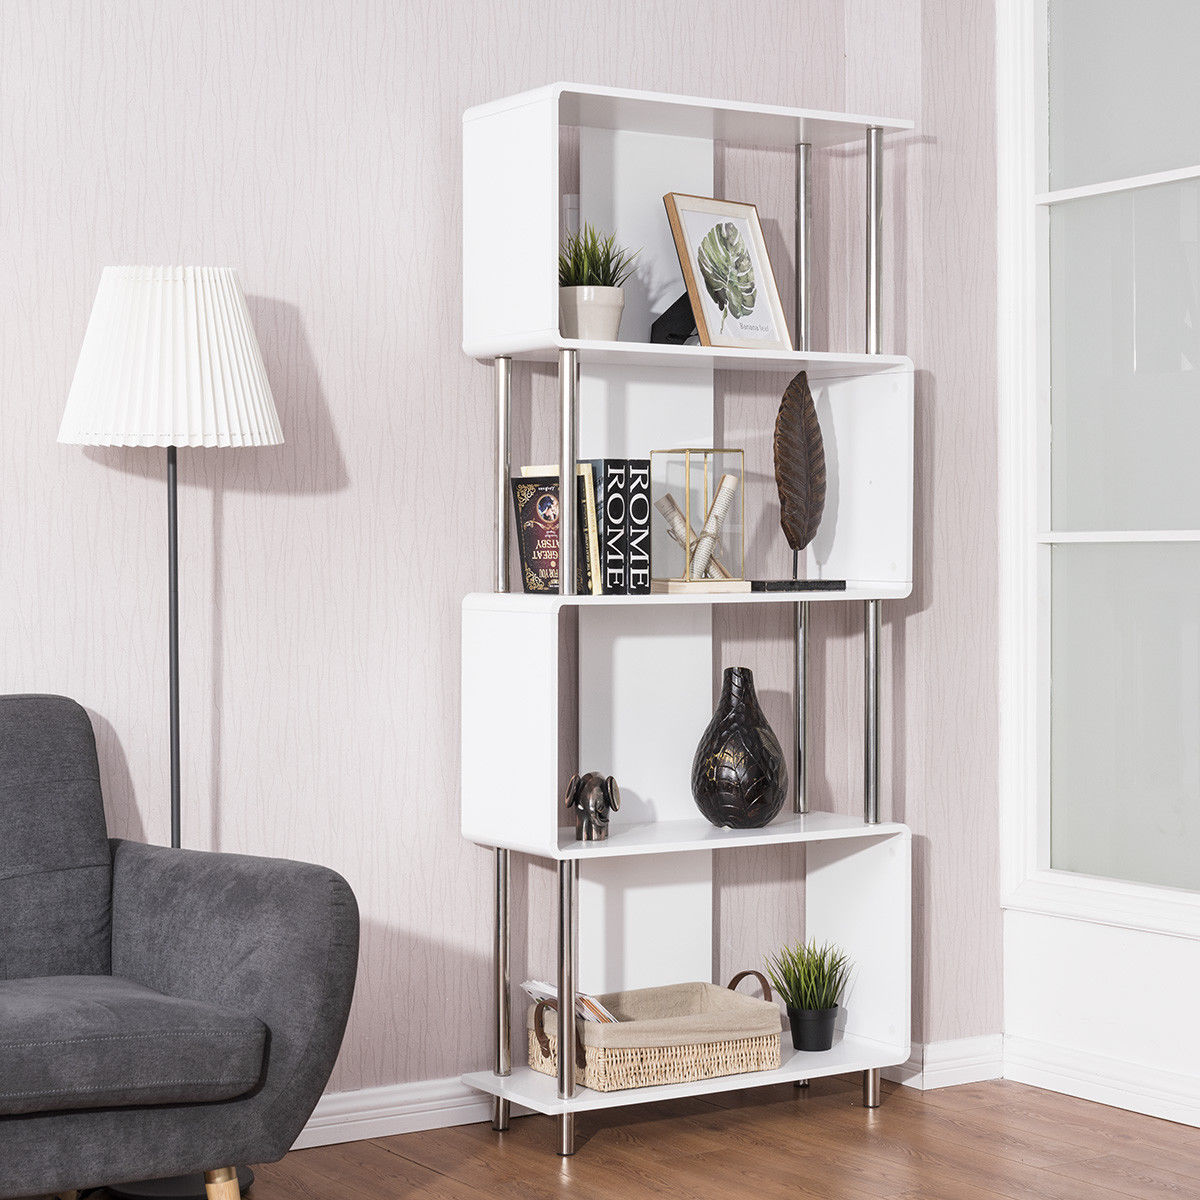 Us 92 99 Giantex Industrial Style 4 Shelf Modern Bookcase Living Room Storage Display Unit Bookshelf White Home Furniture Hw56698 On Aliexpress